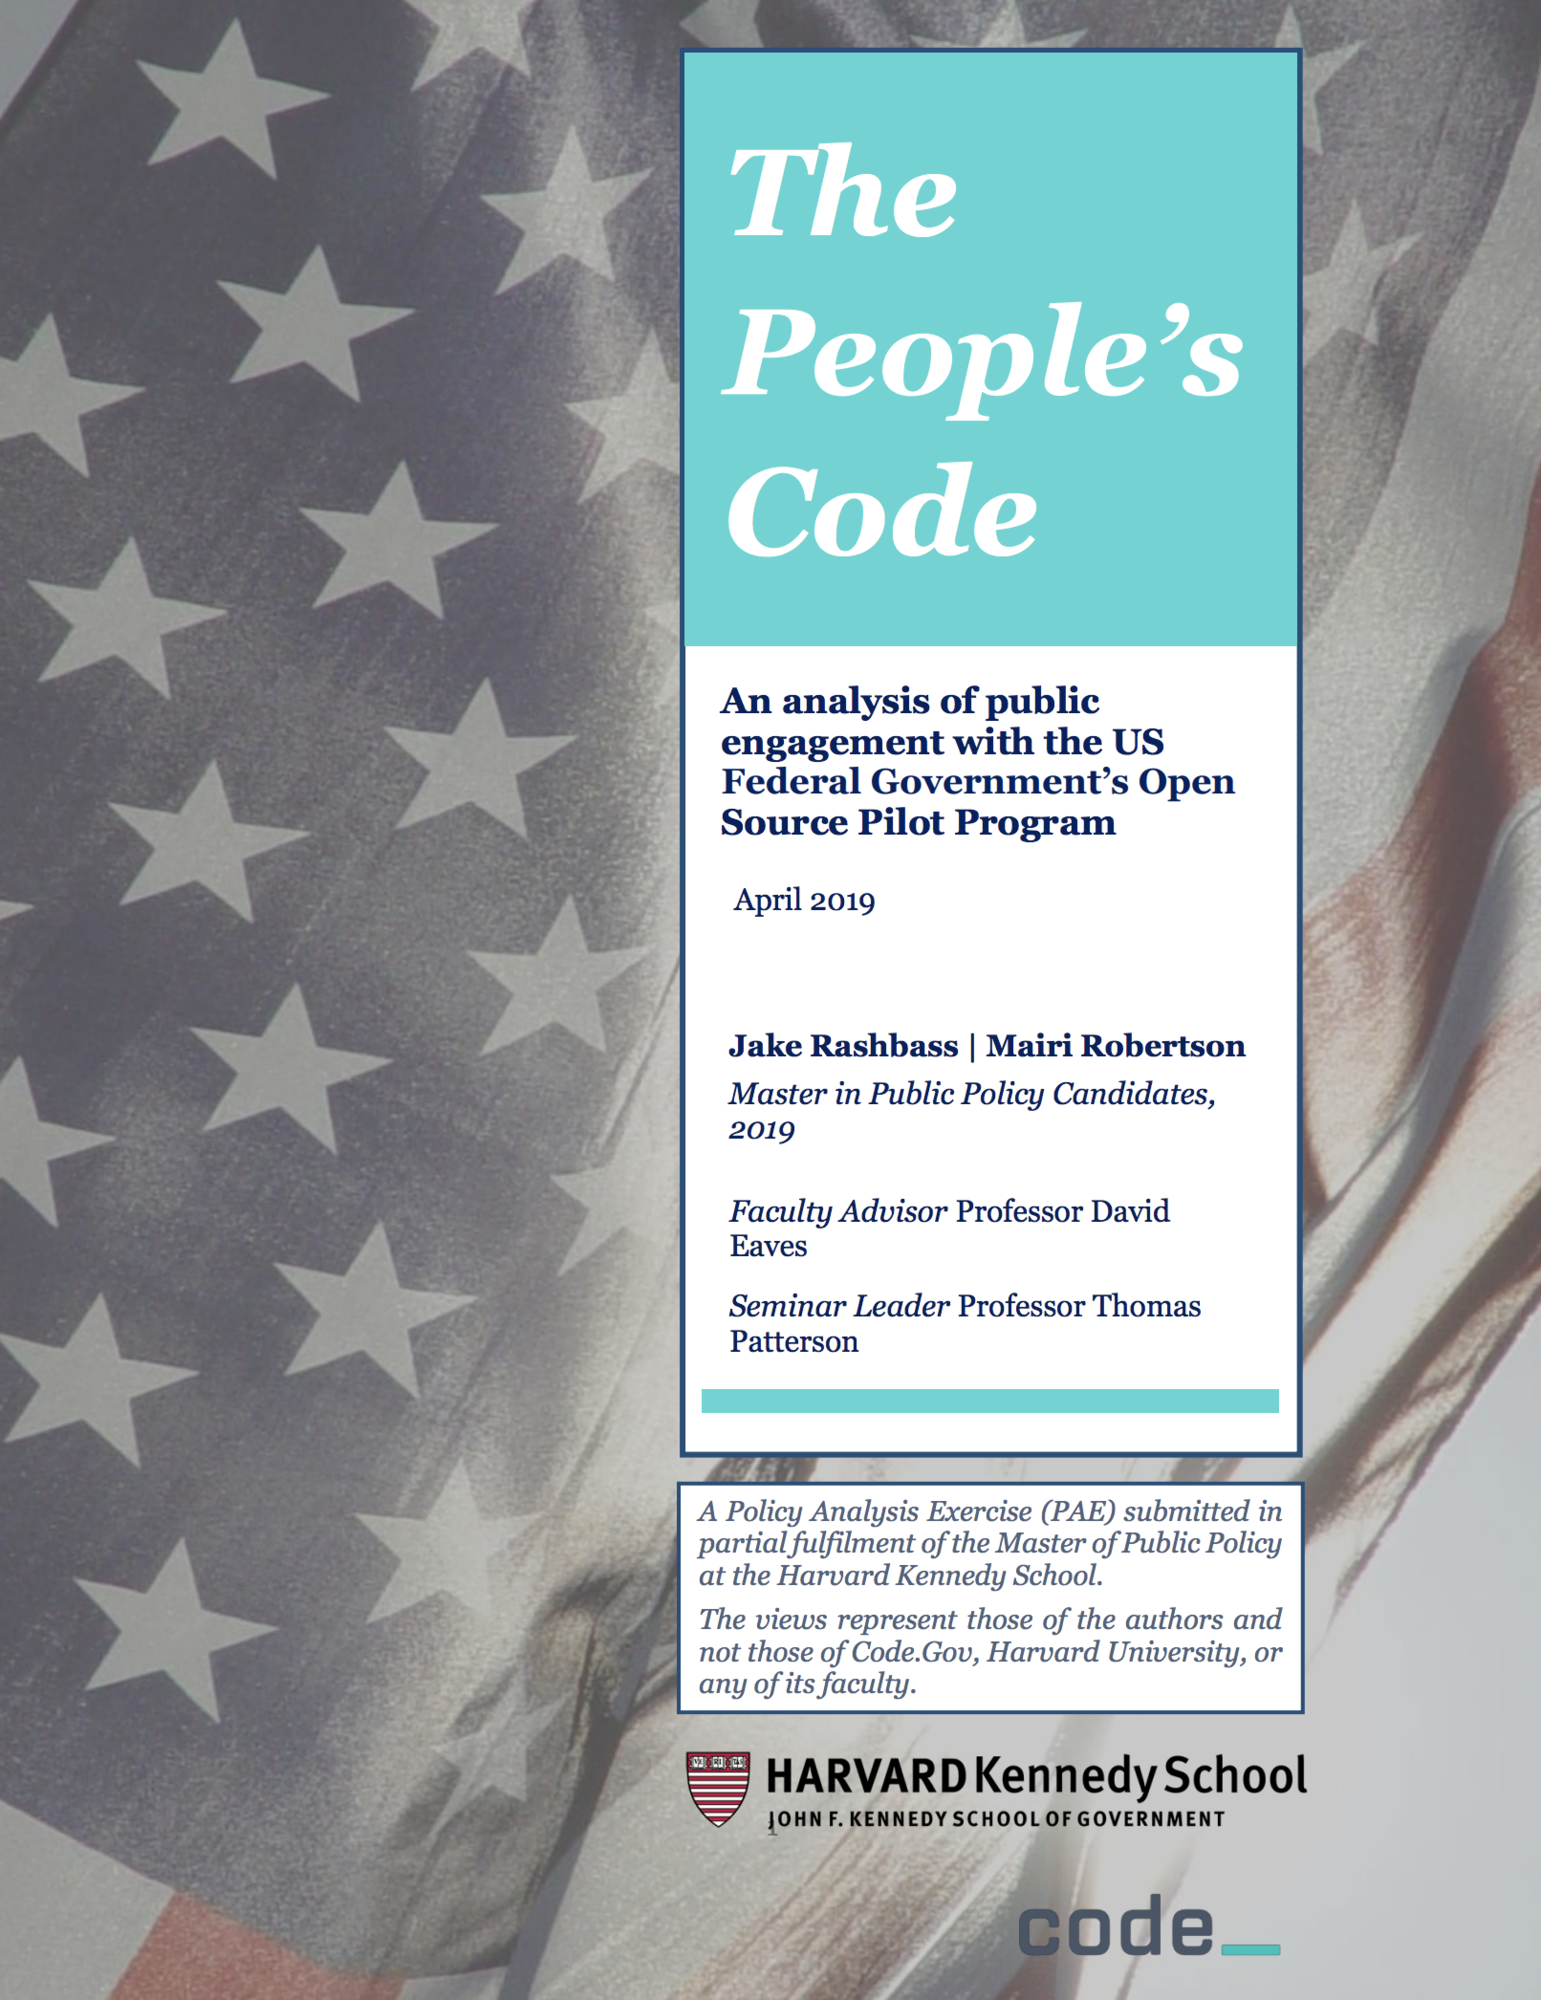 The people's code